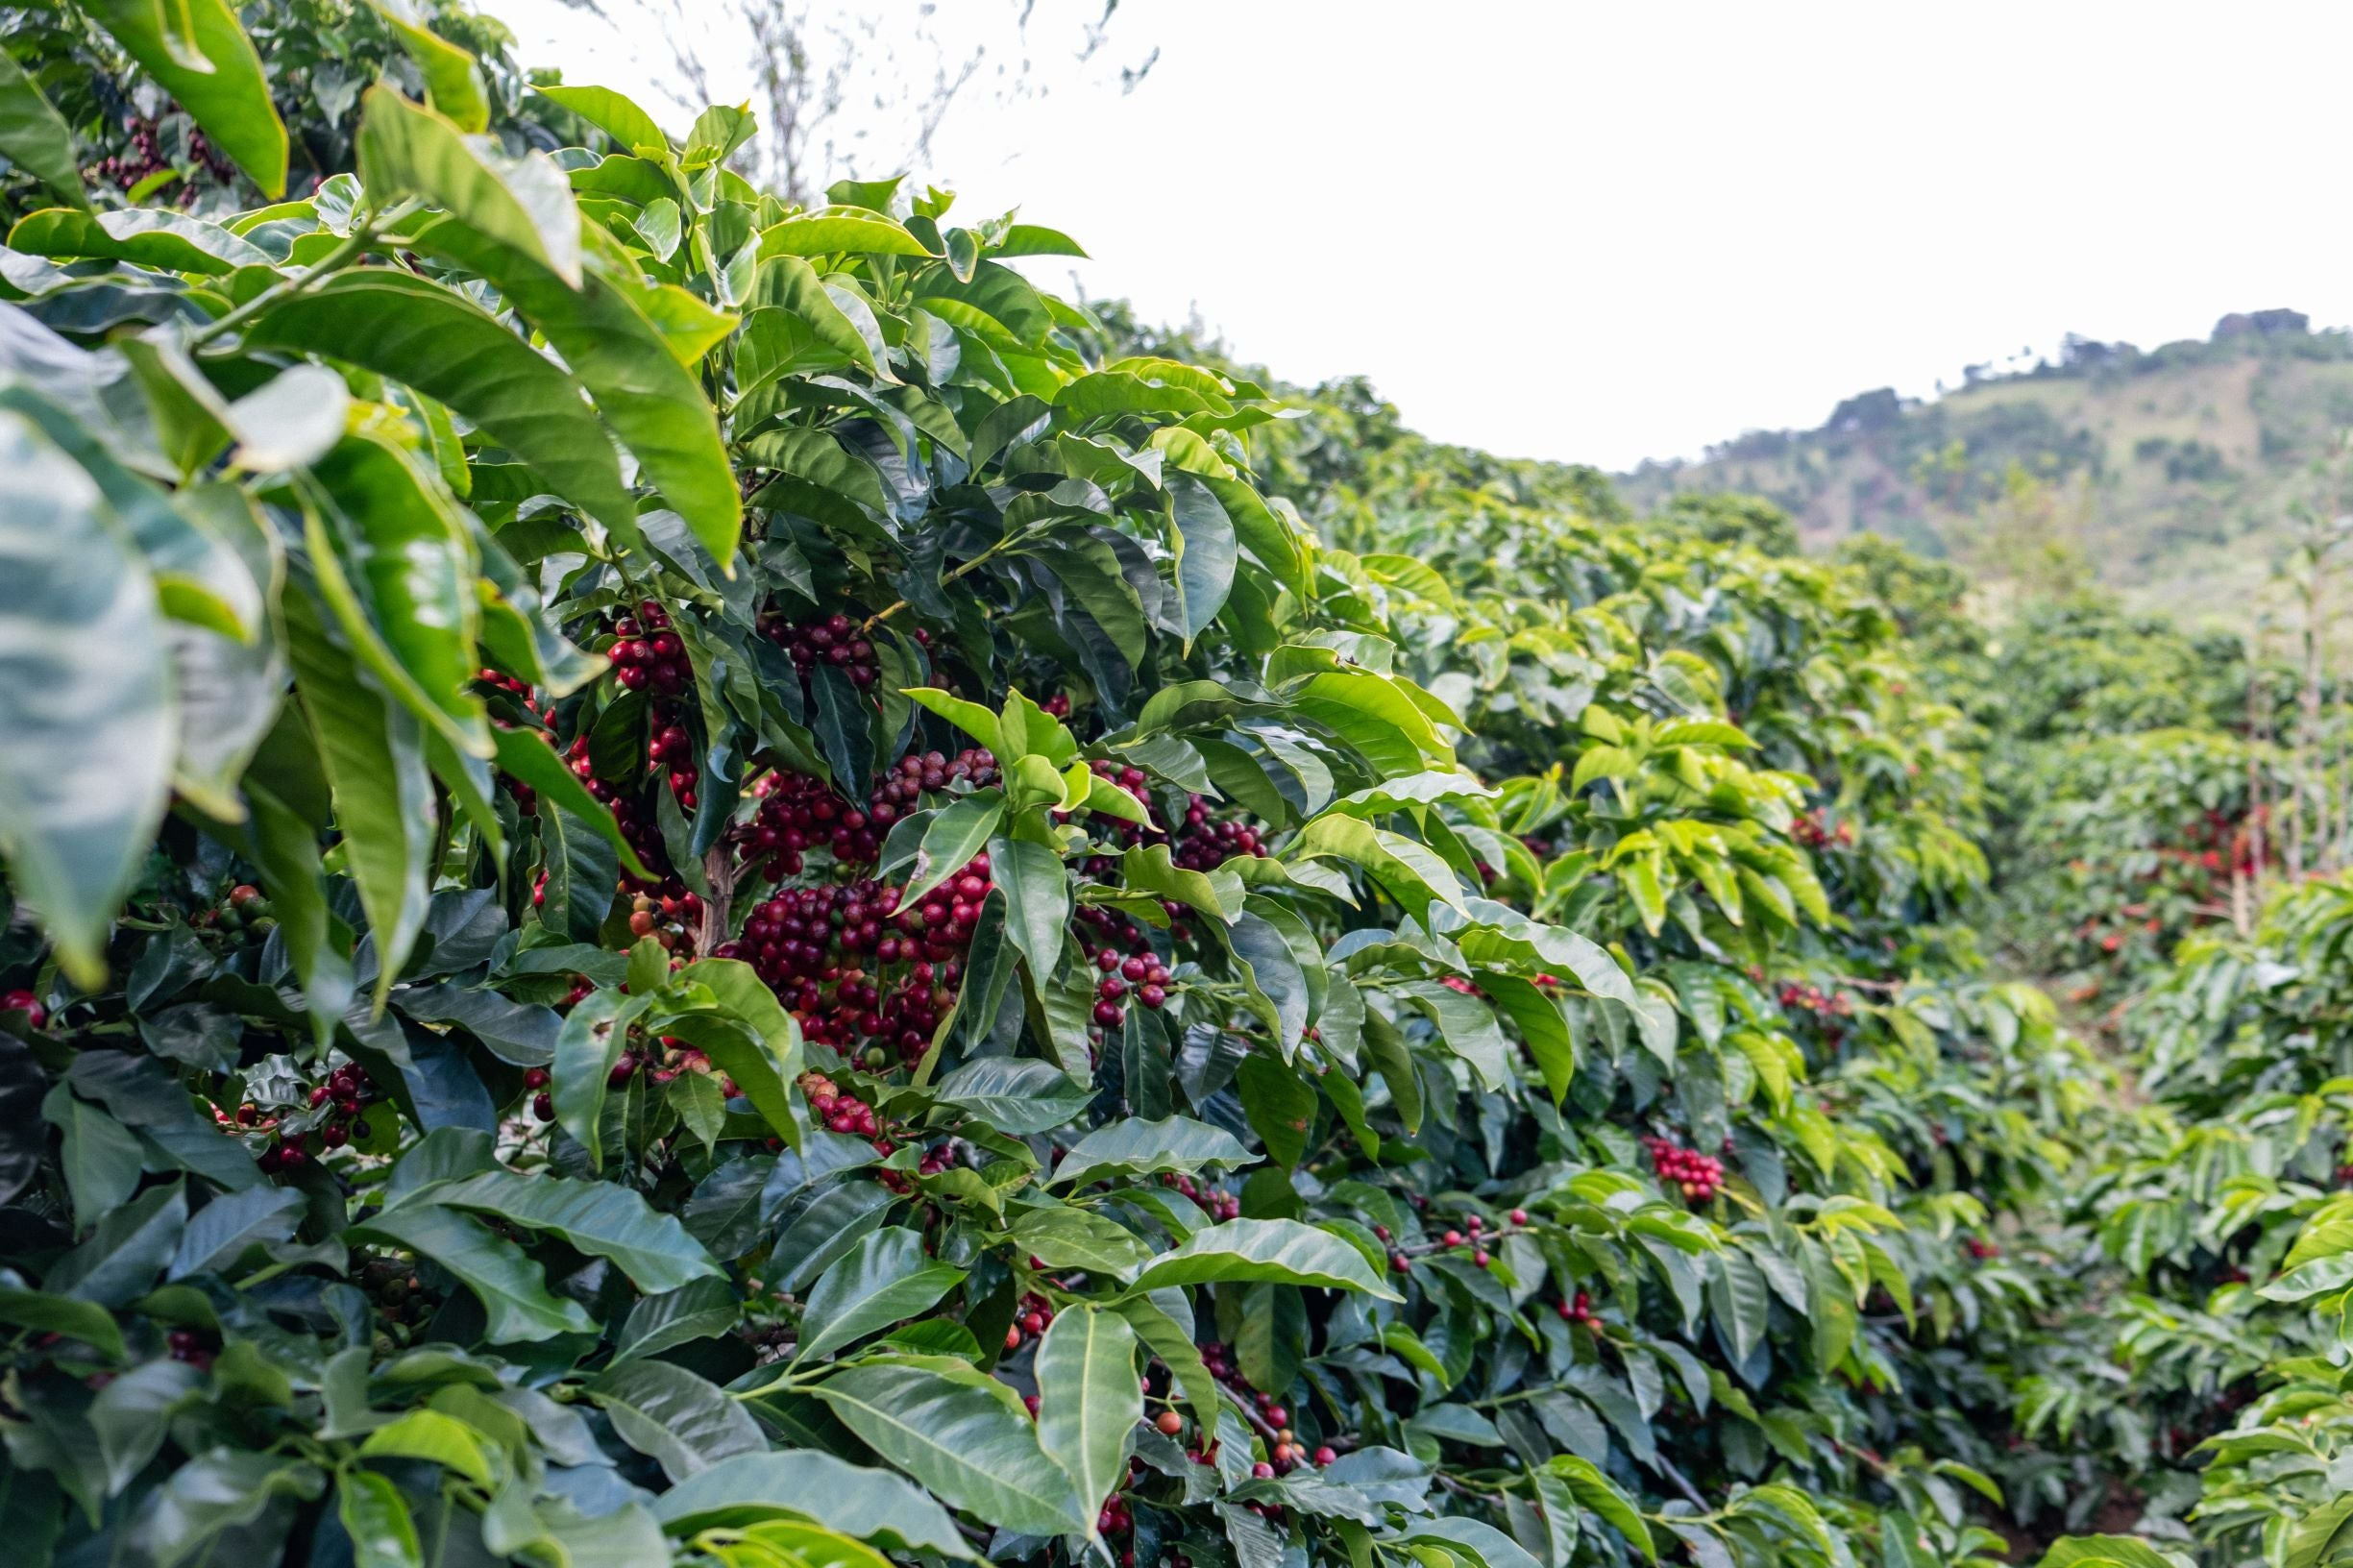 Ripe coffee cherries on the trees